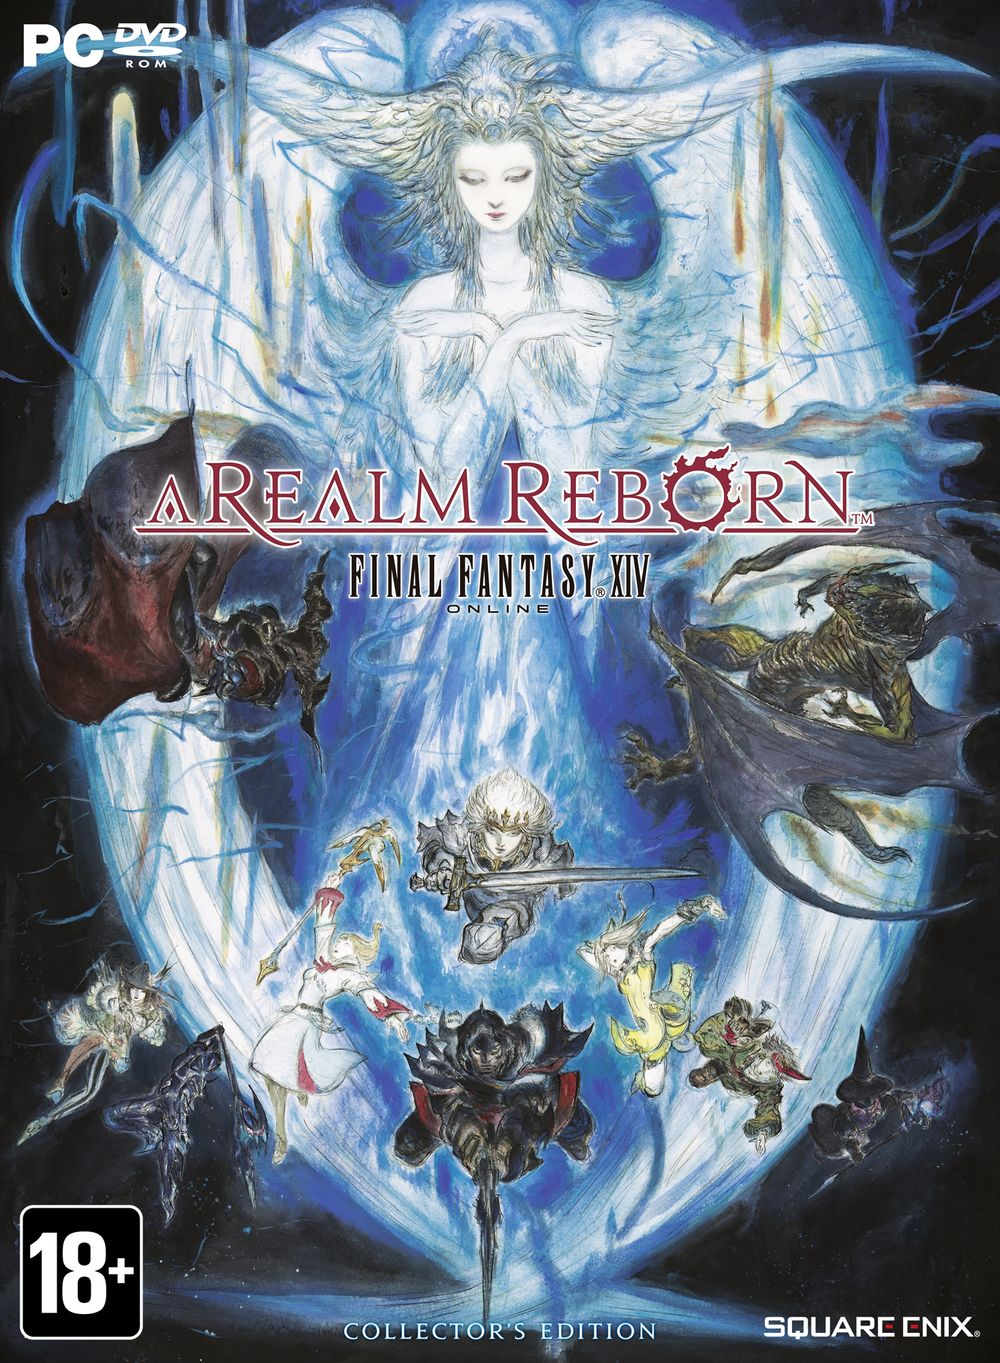 Final Fantasy XIV: A Realm Reborn. Collector's Edition